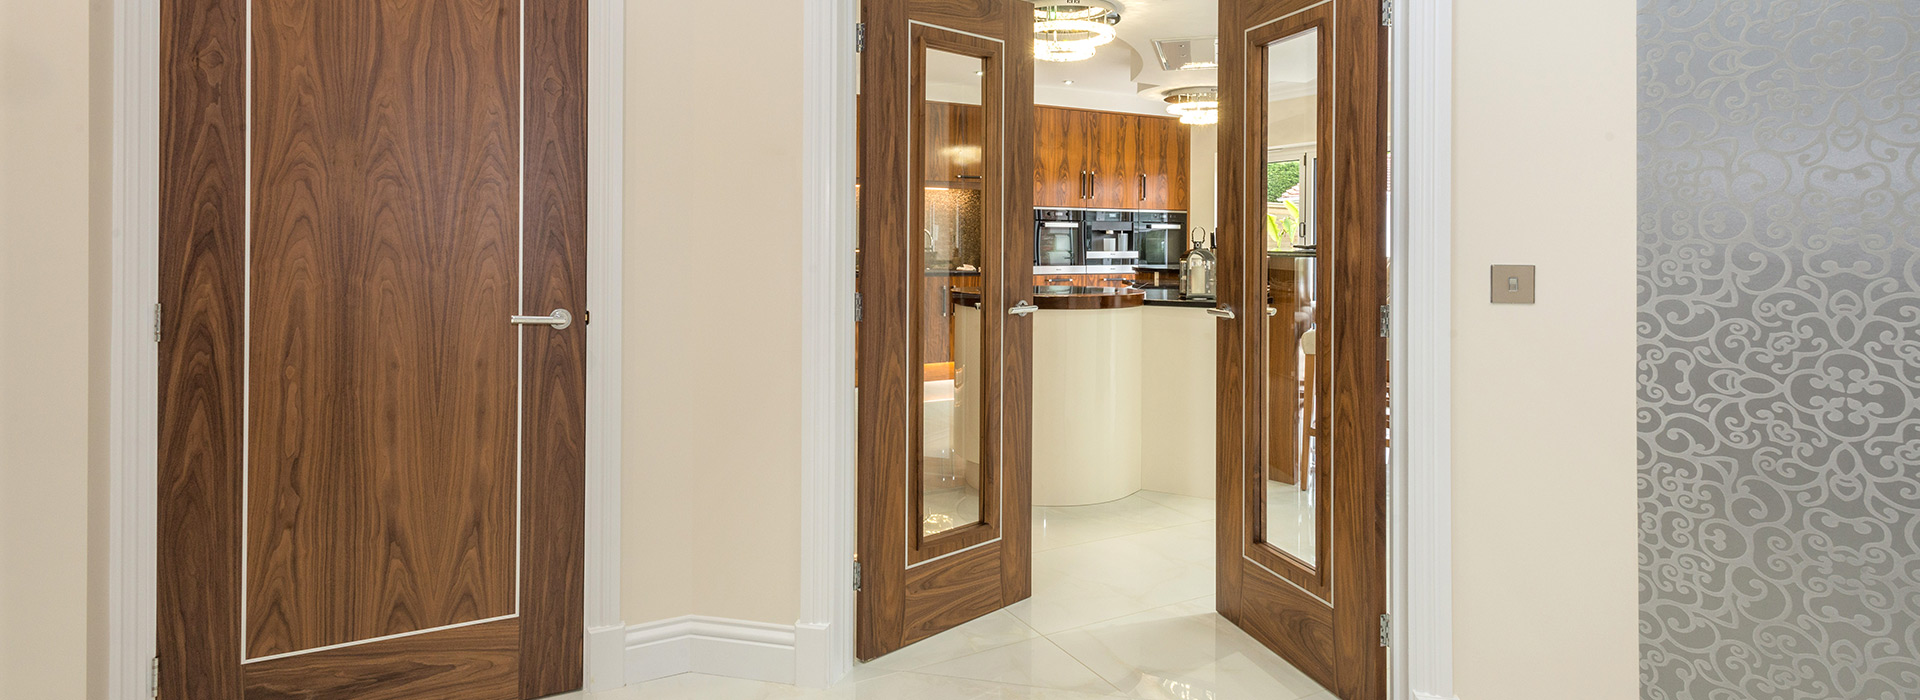 Glazed Walnut double doors